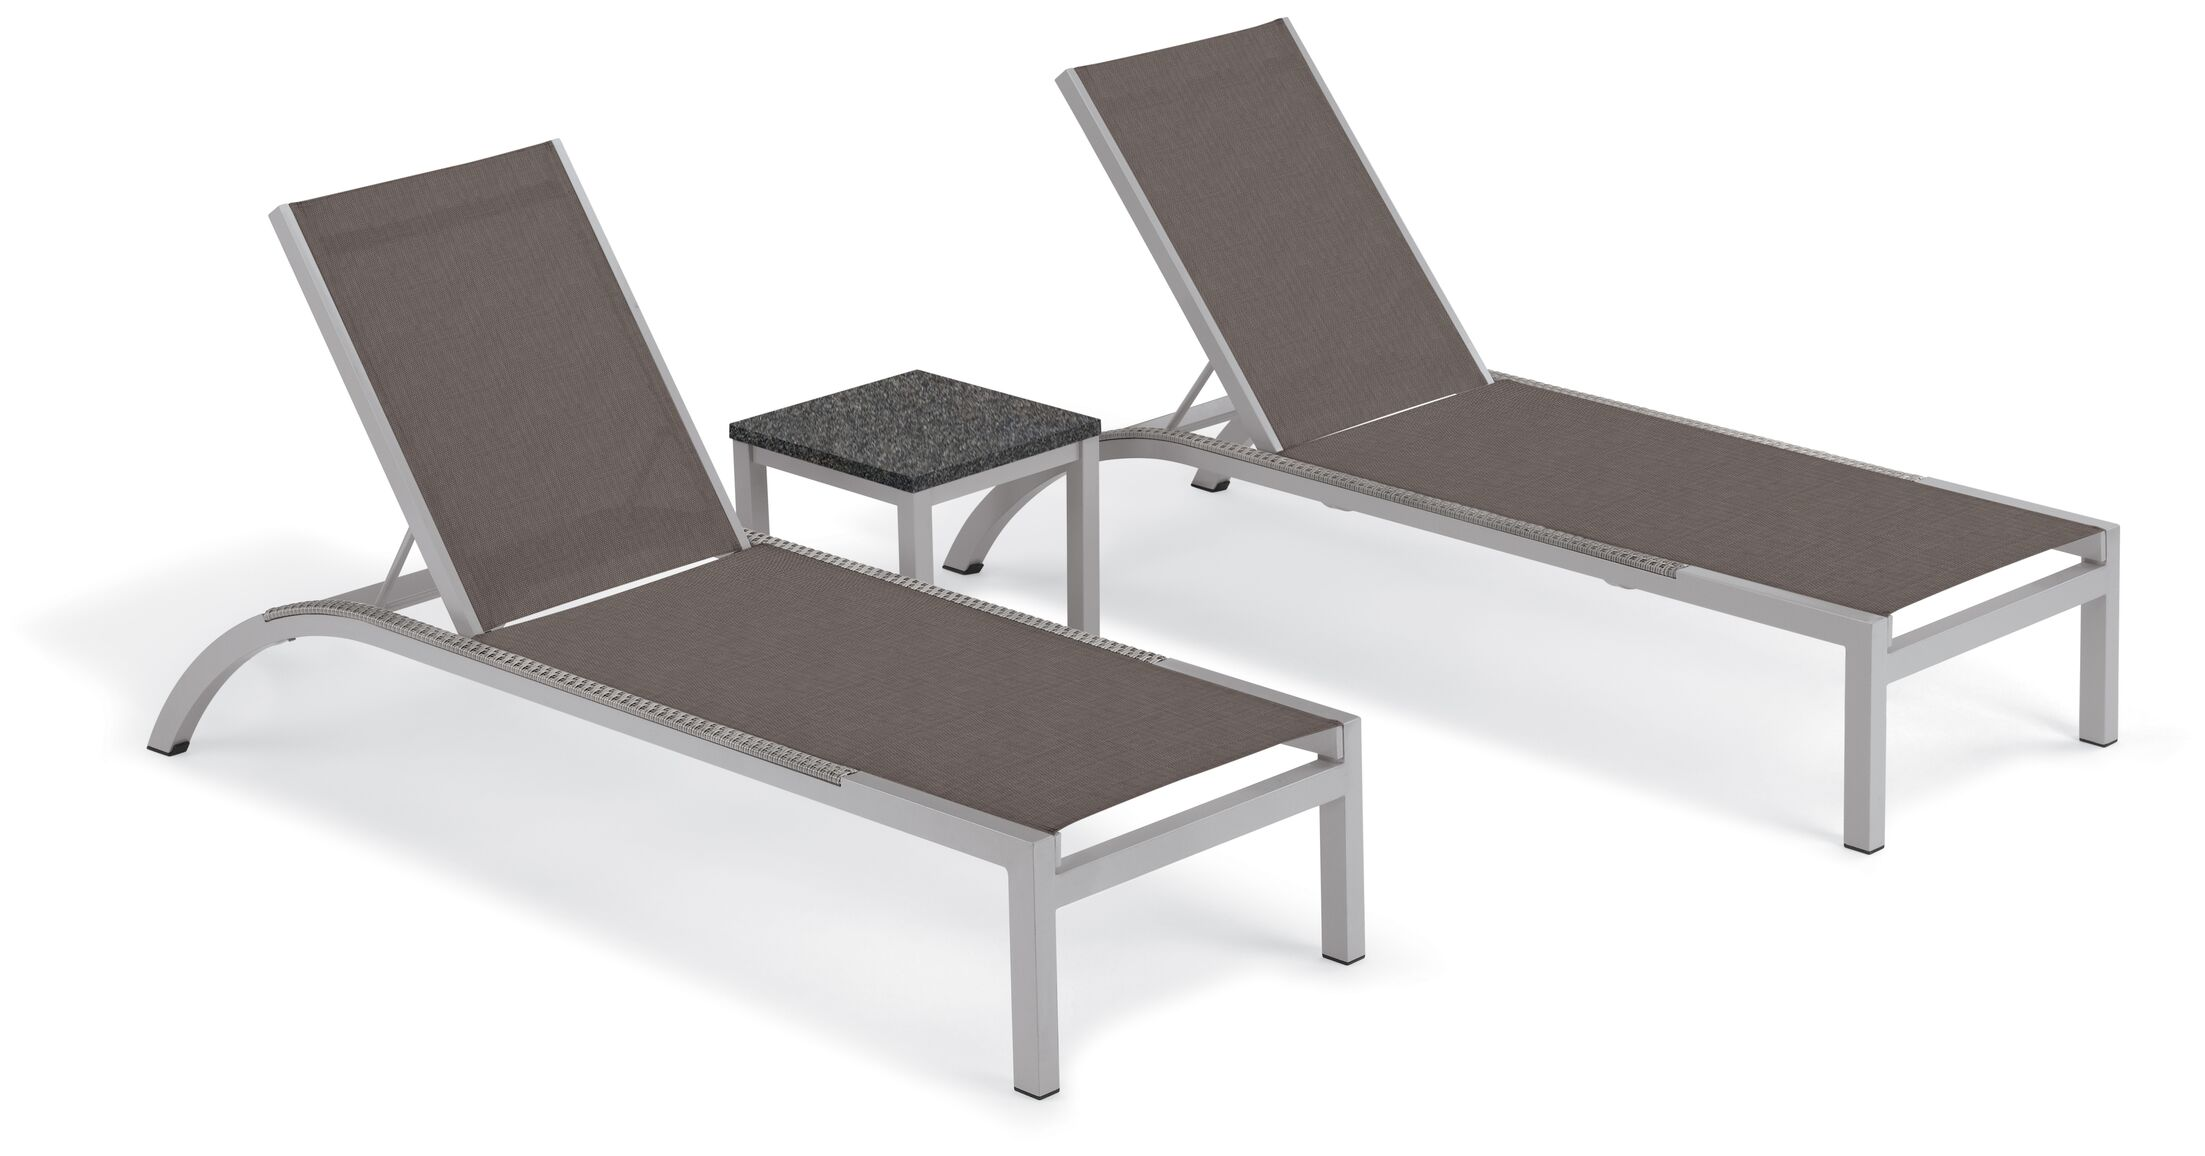 Saint-Pierre Reclining Chaise Lounge with End Table Color: Cocoa, Tabletop Color: Charcoal